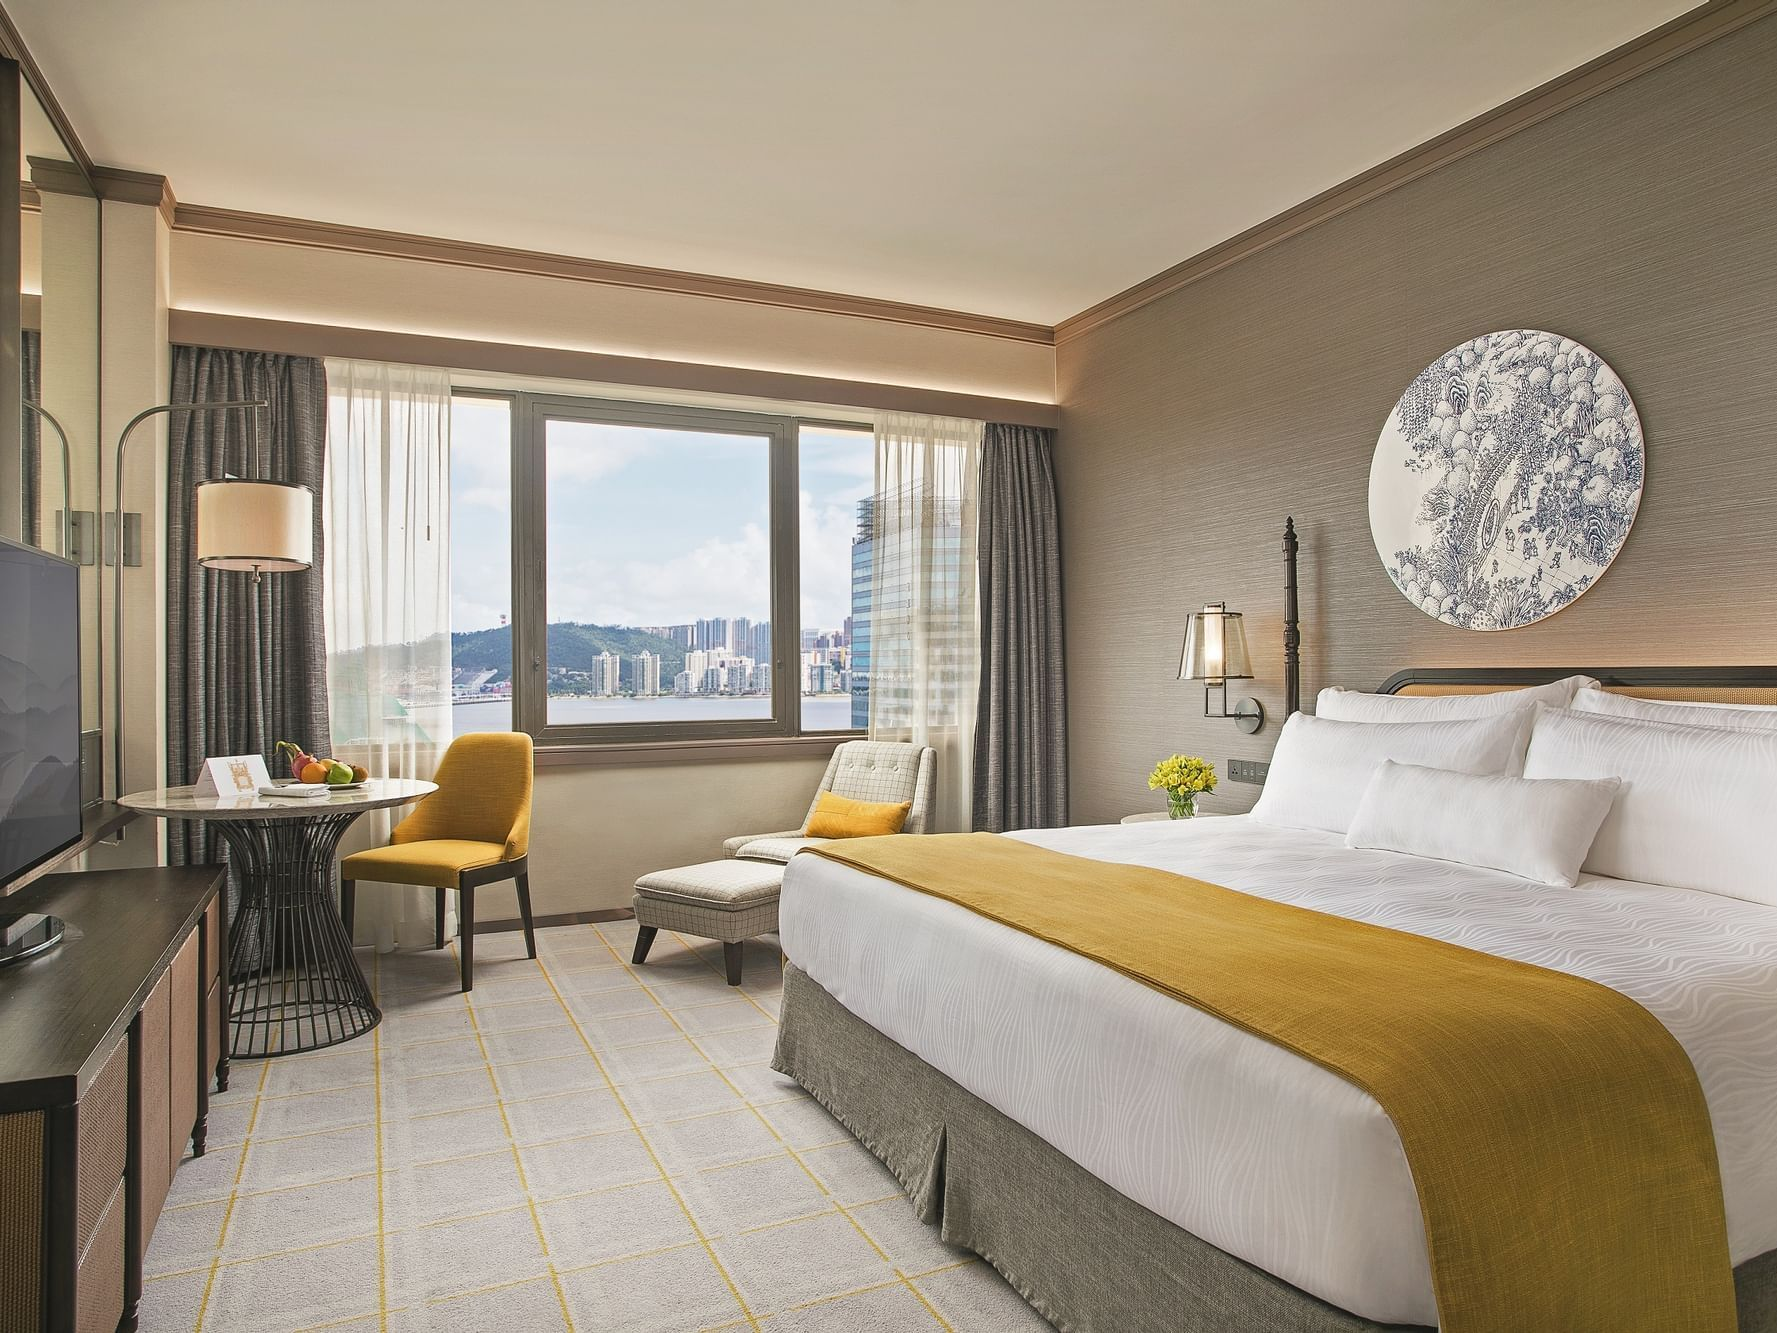 Deluxe room with king sized bed at Artyzen Grand Lapa Hotel Macau